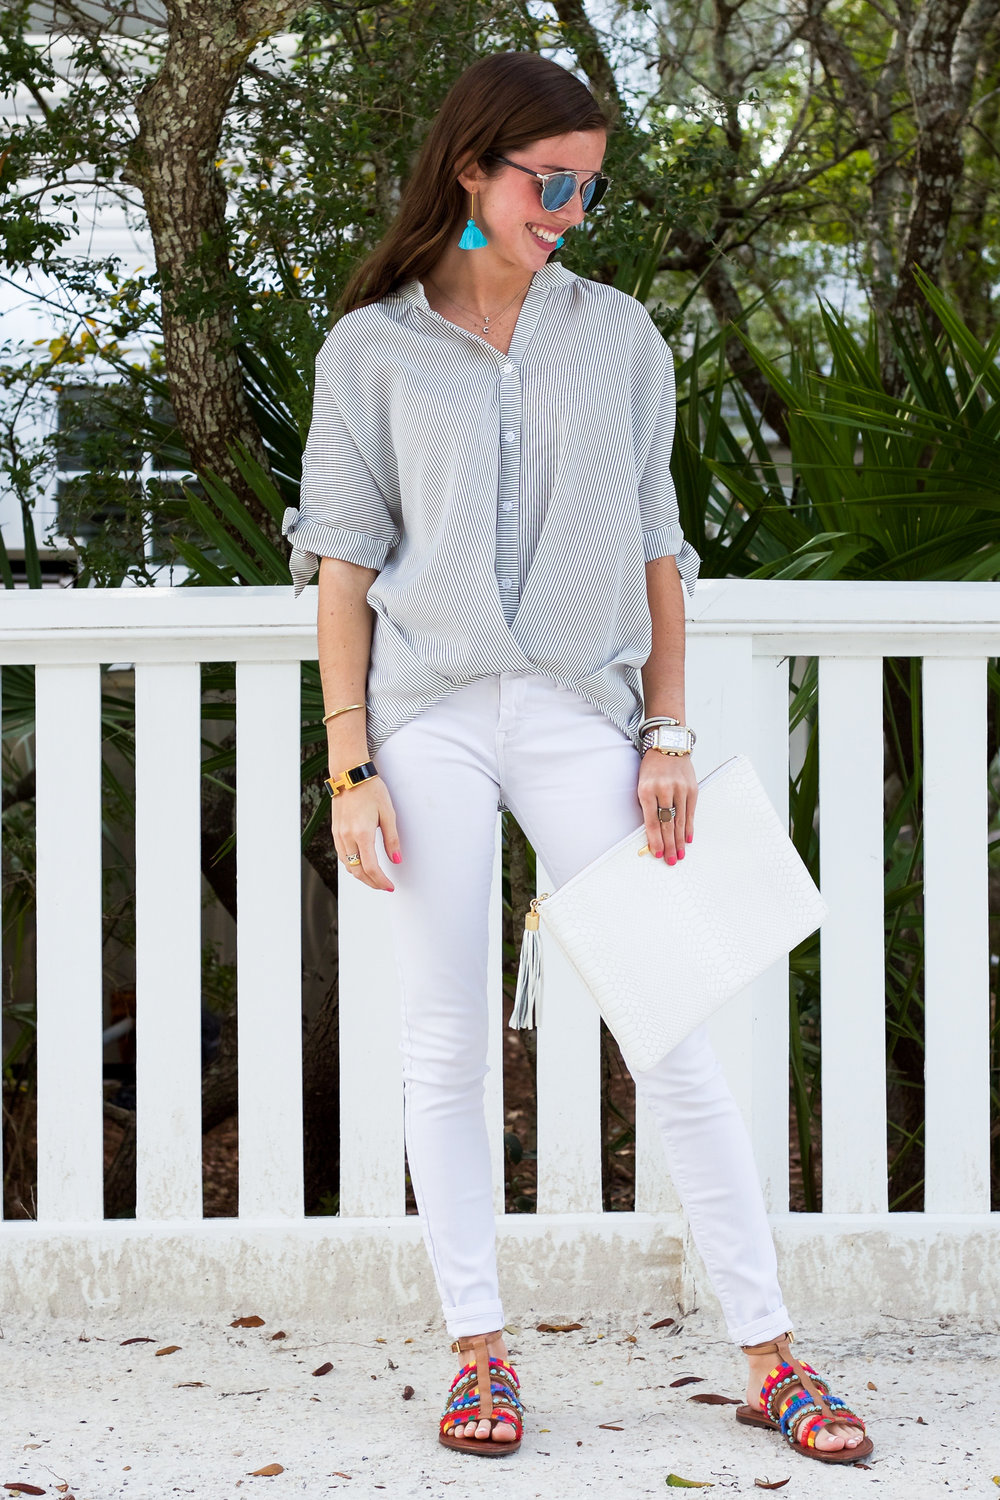 lcb style fashion blogger monkees seaside beach florida (15 of 15).jpg